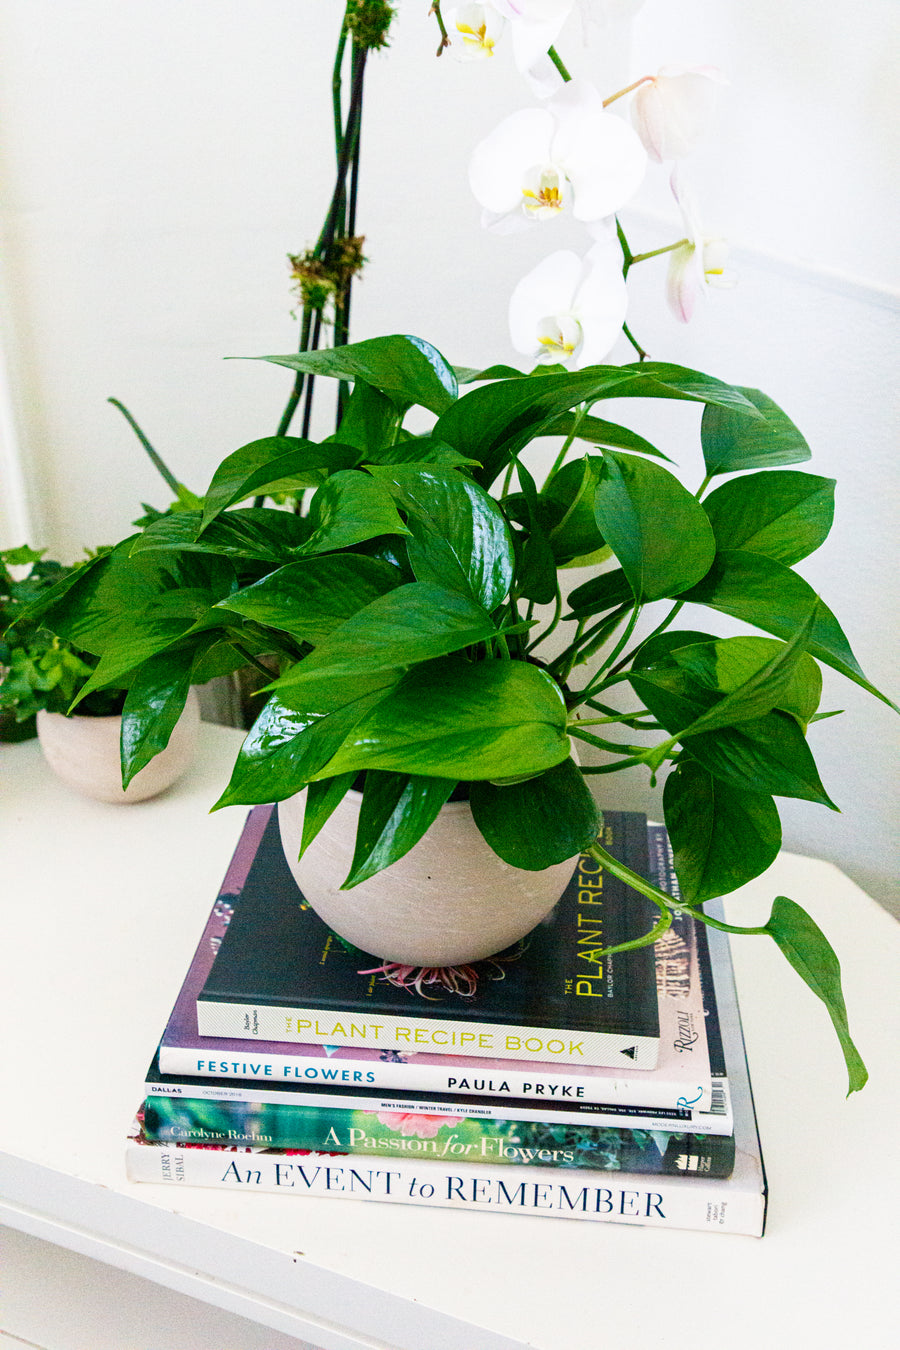 The Philodendron | Local Plants - Lizzie Bee's Flower Shoppe